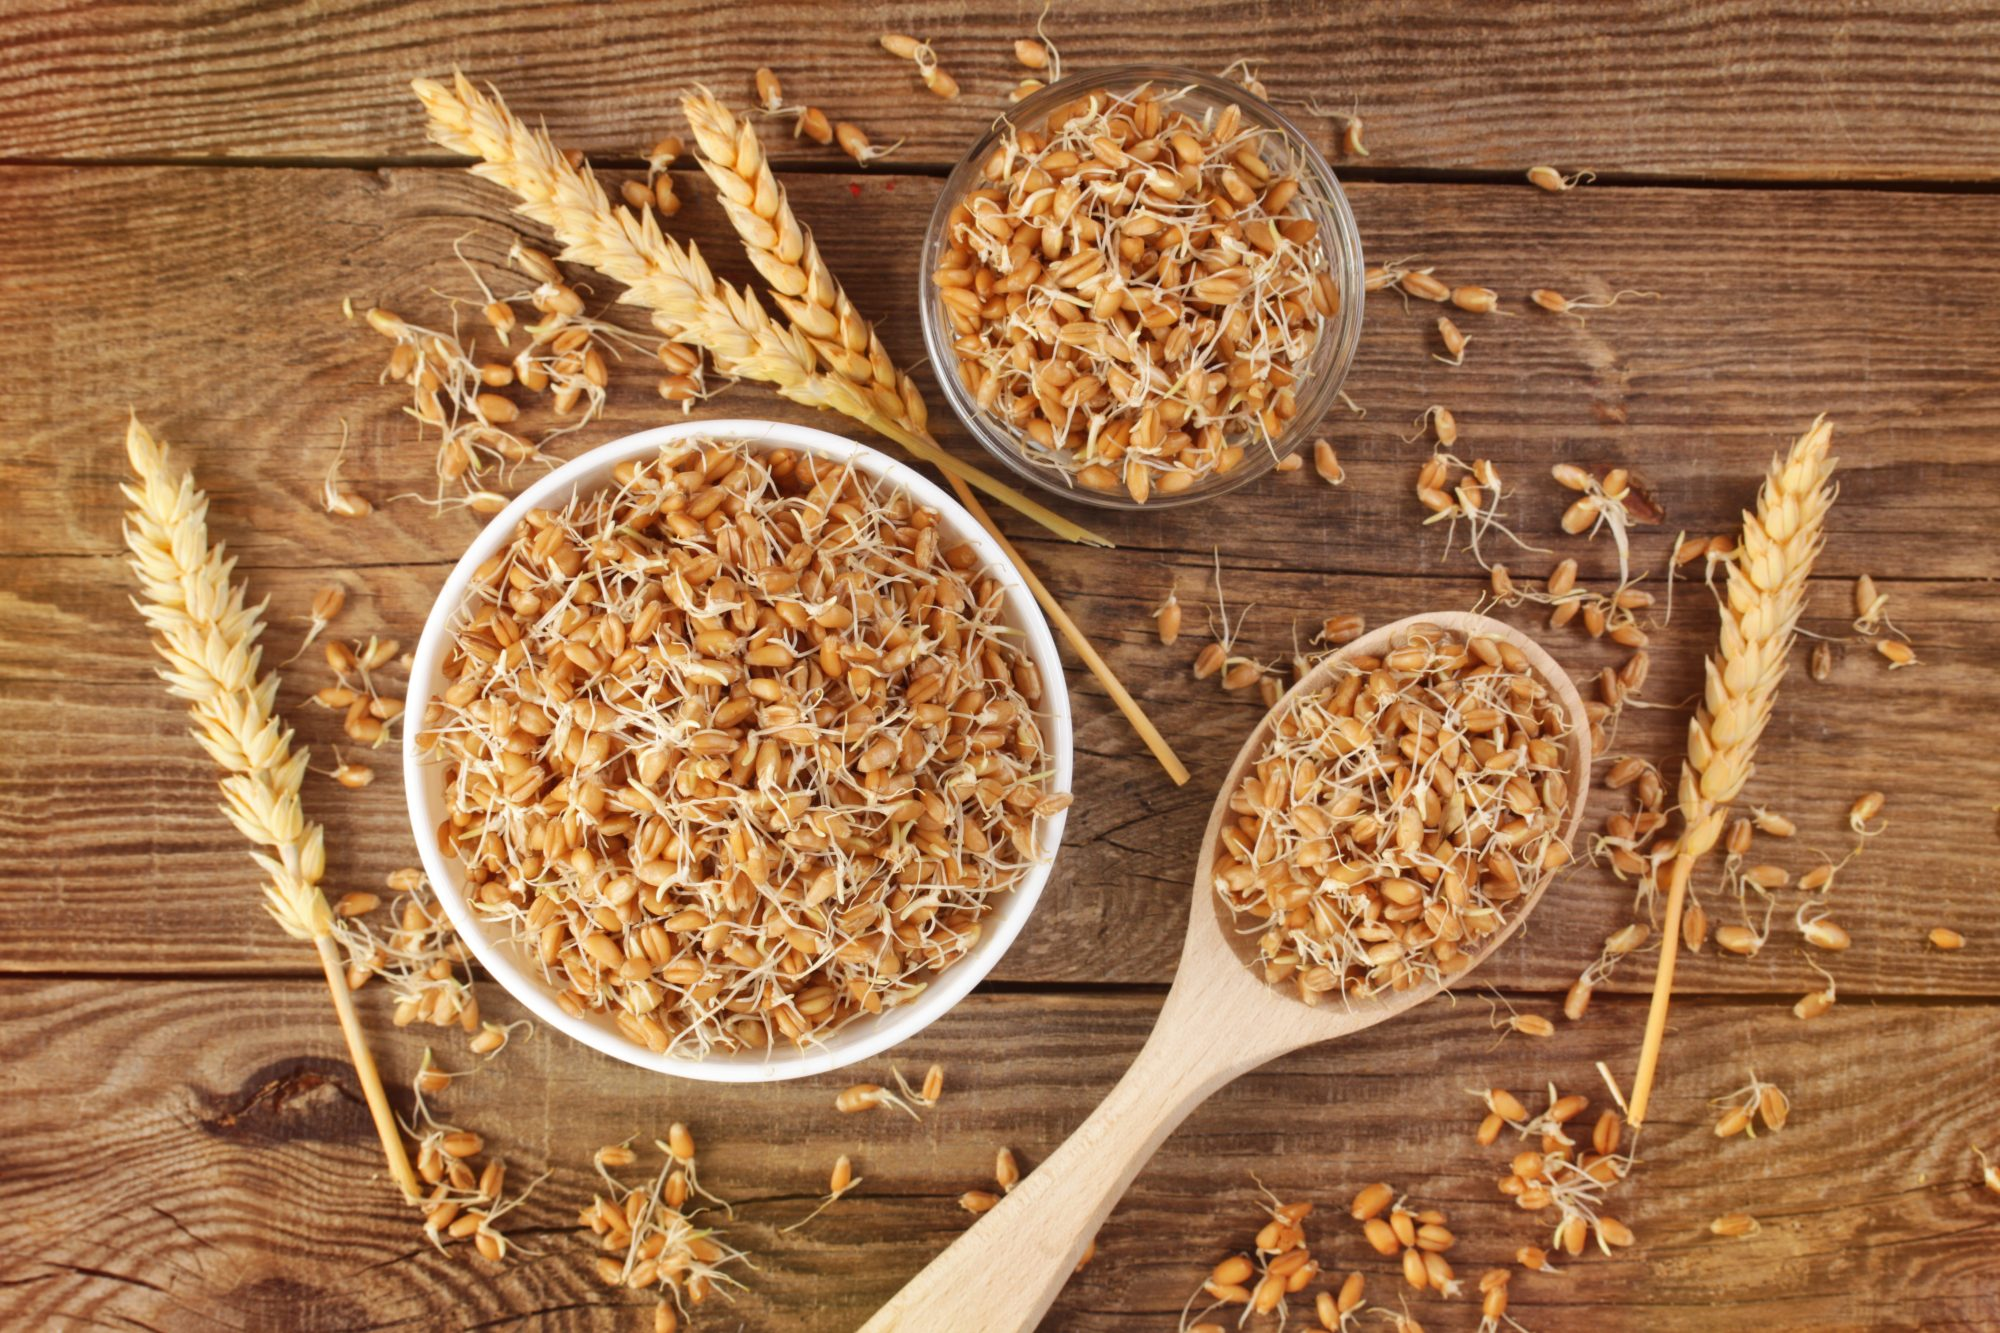 sprouted-grains-wheat